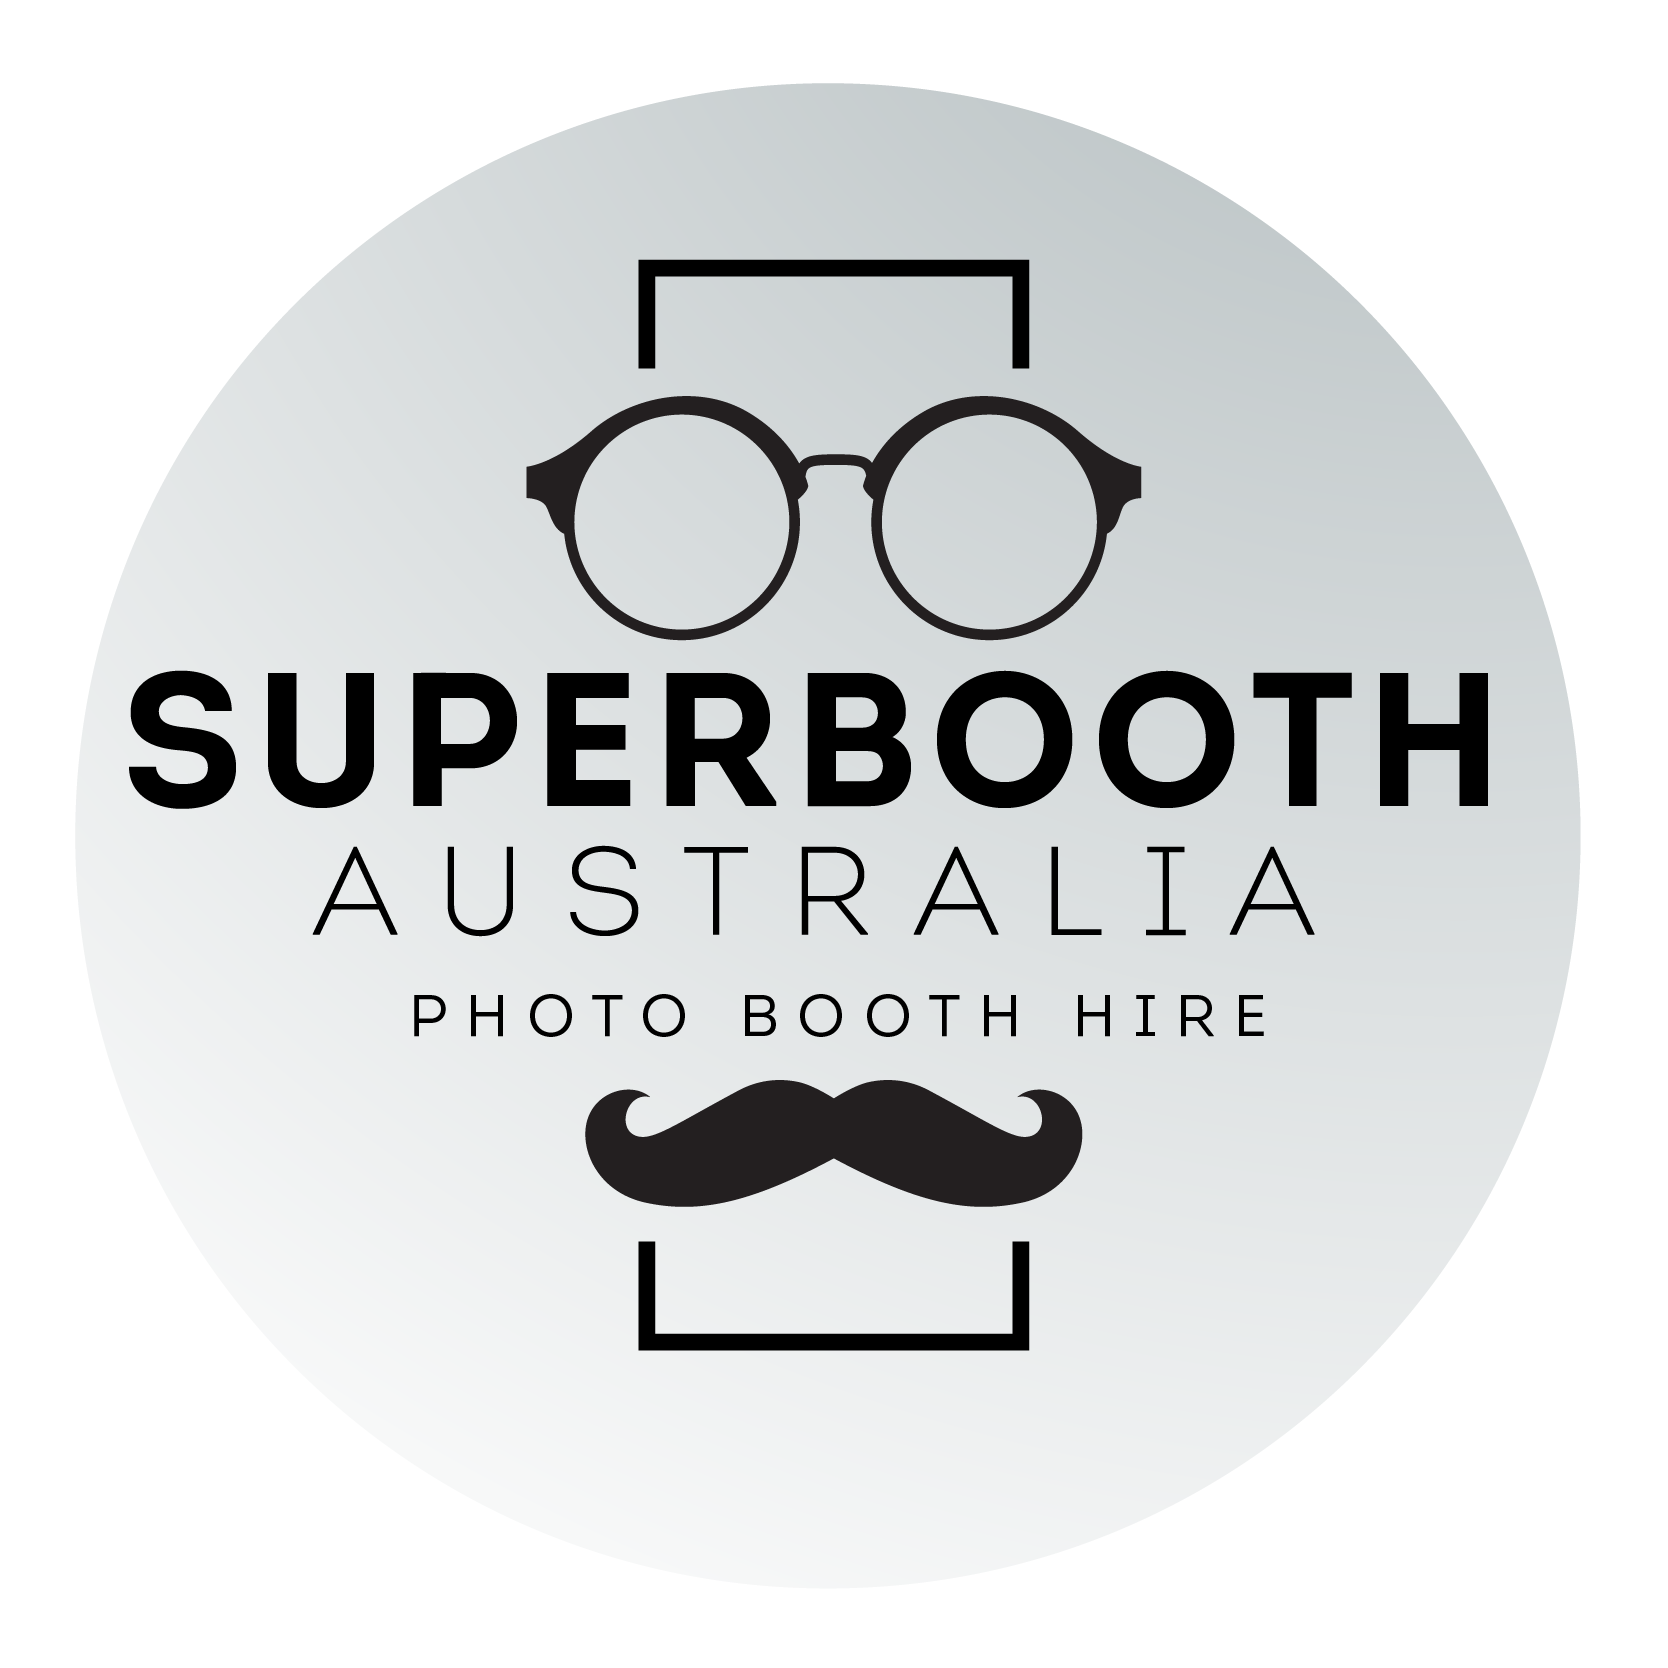 Superbooth Australia